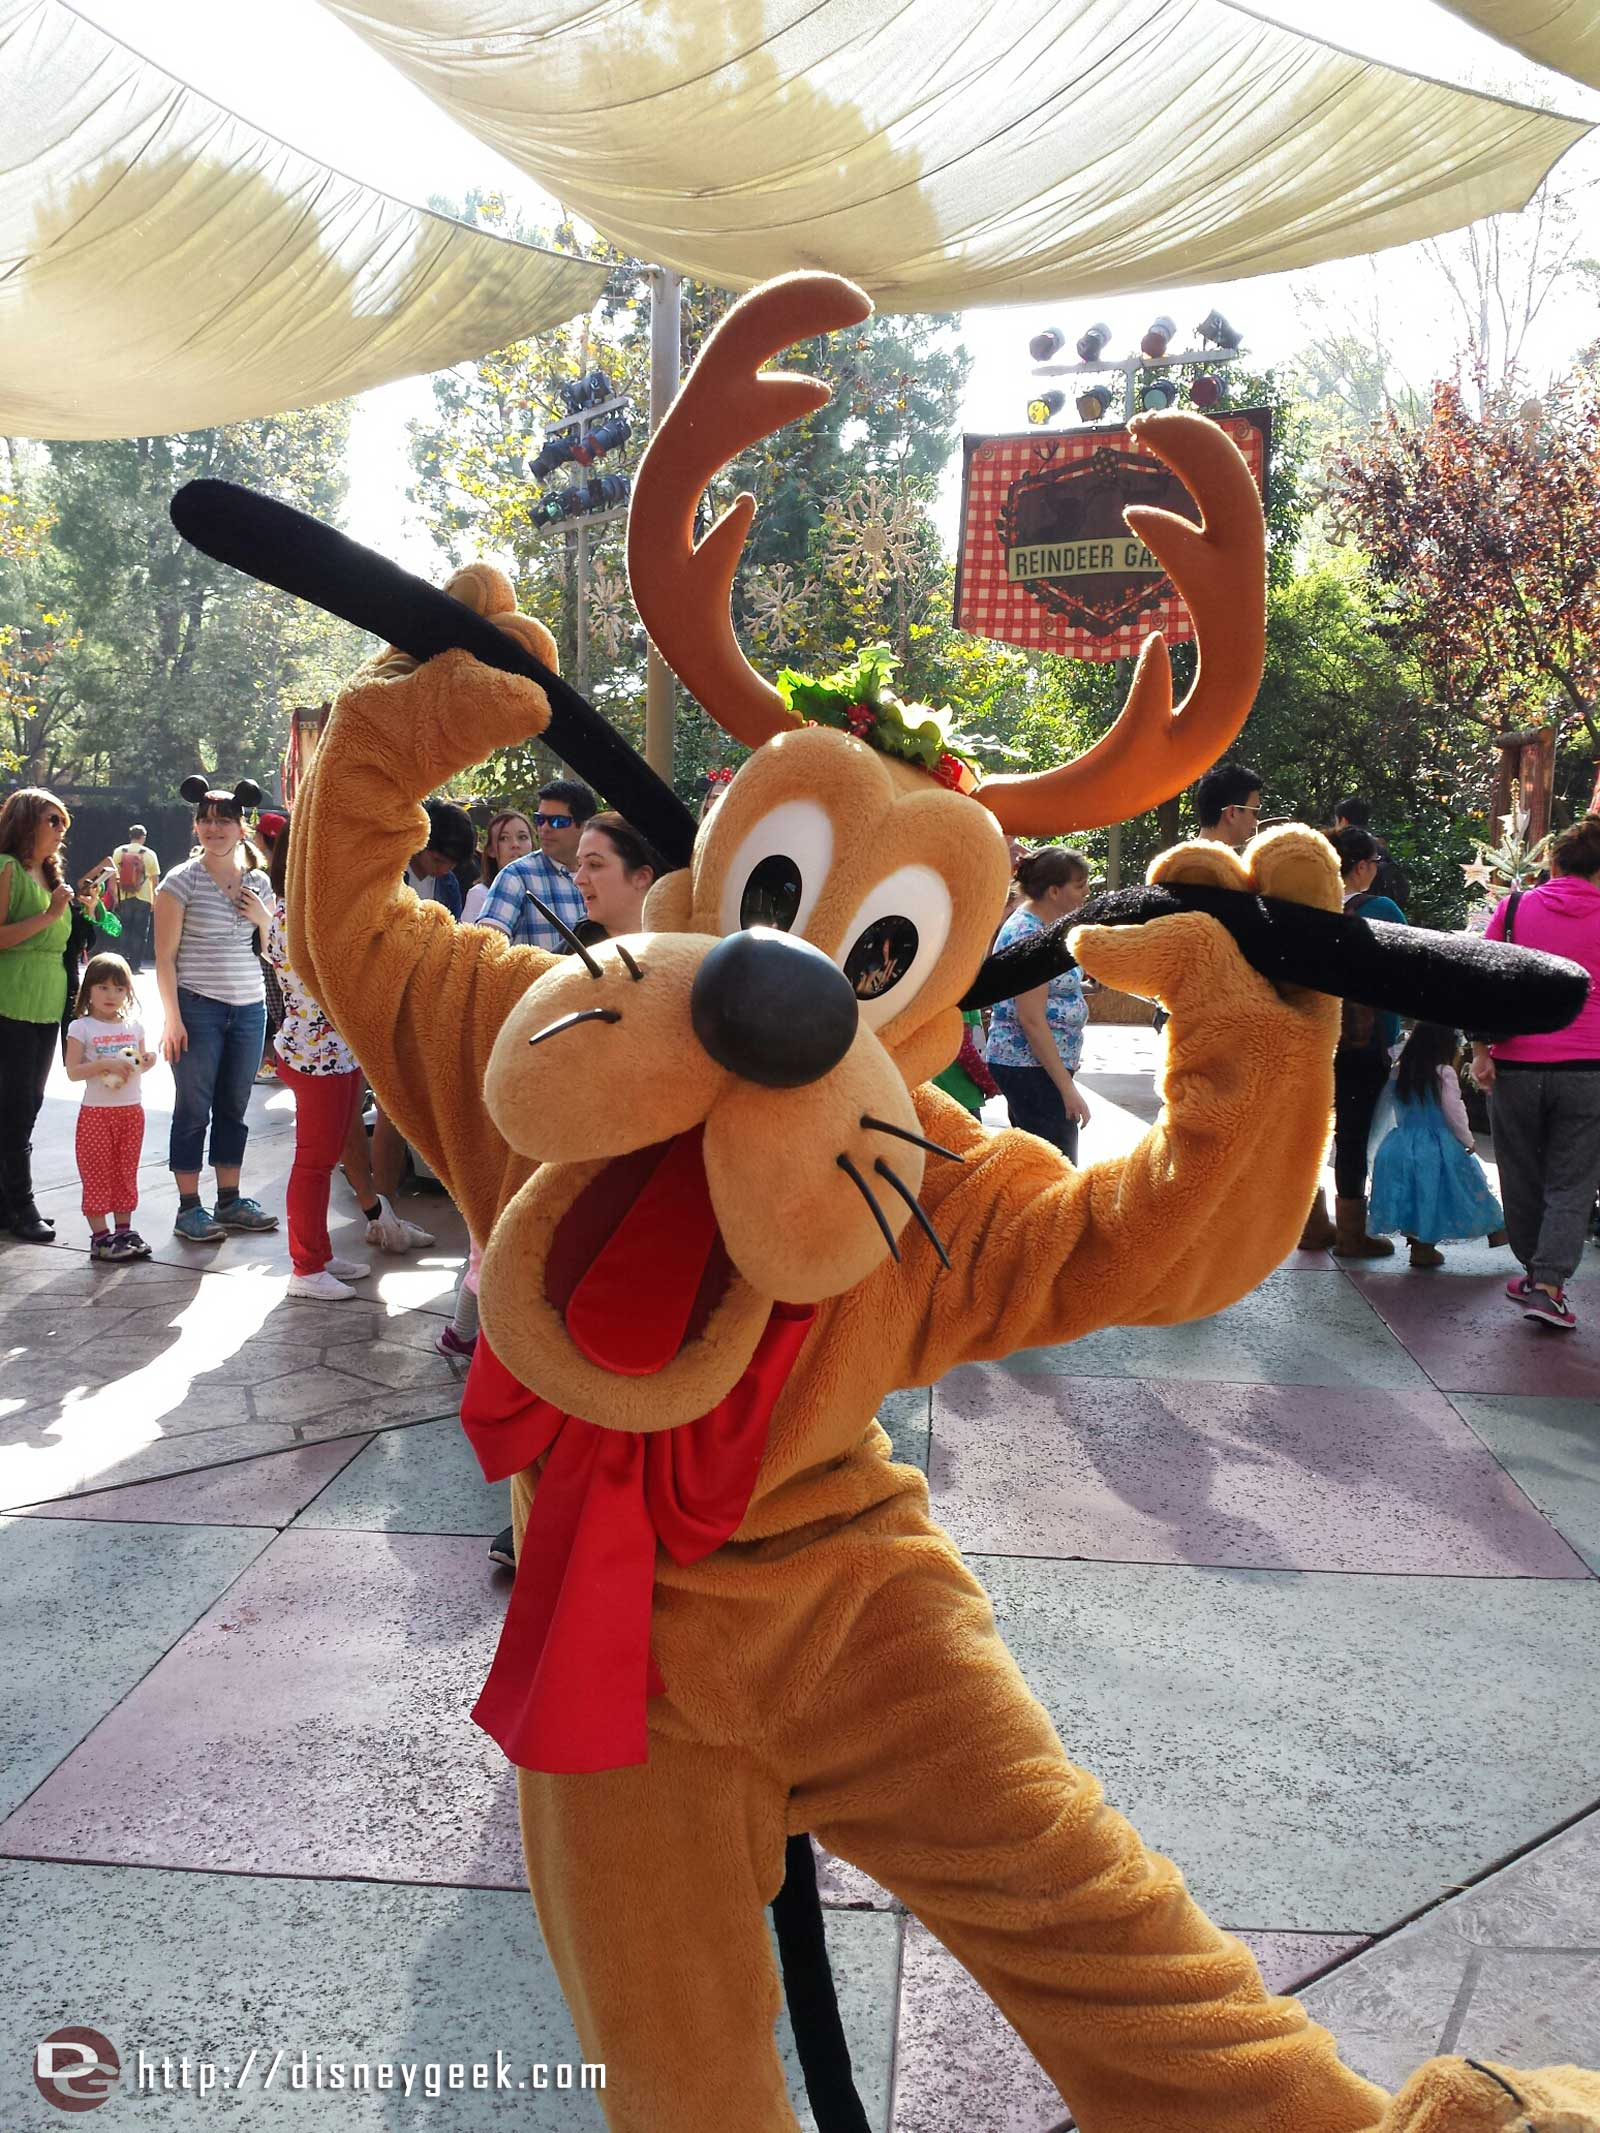 Pluto at the Jingle Jangle Jamboree #Disneyland